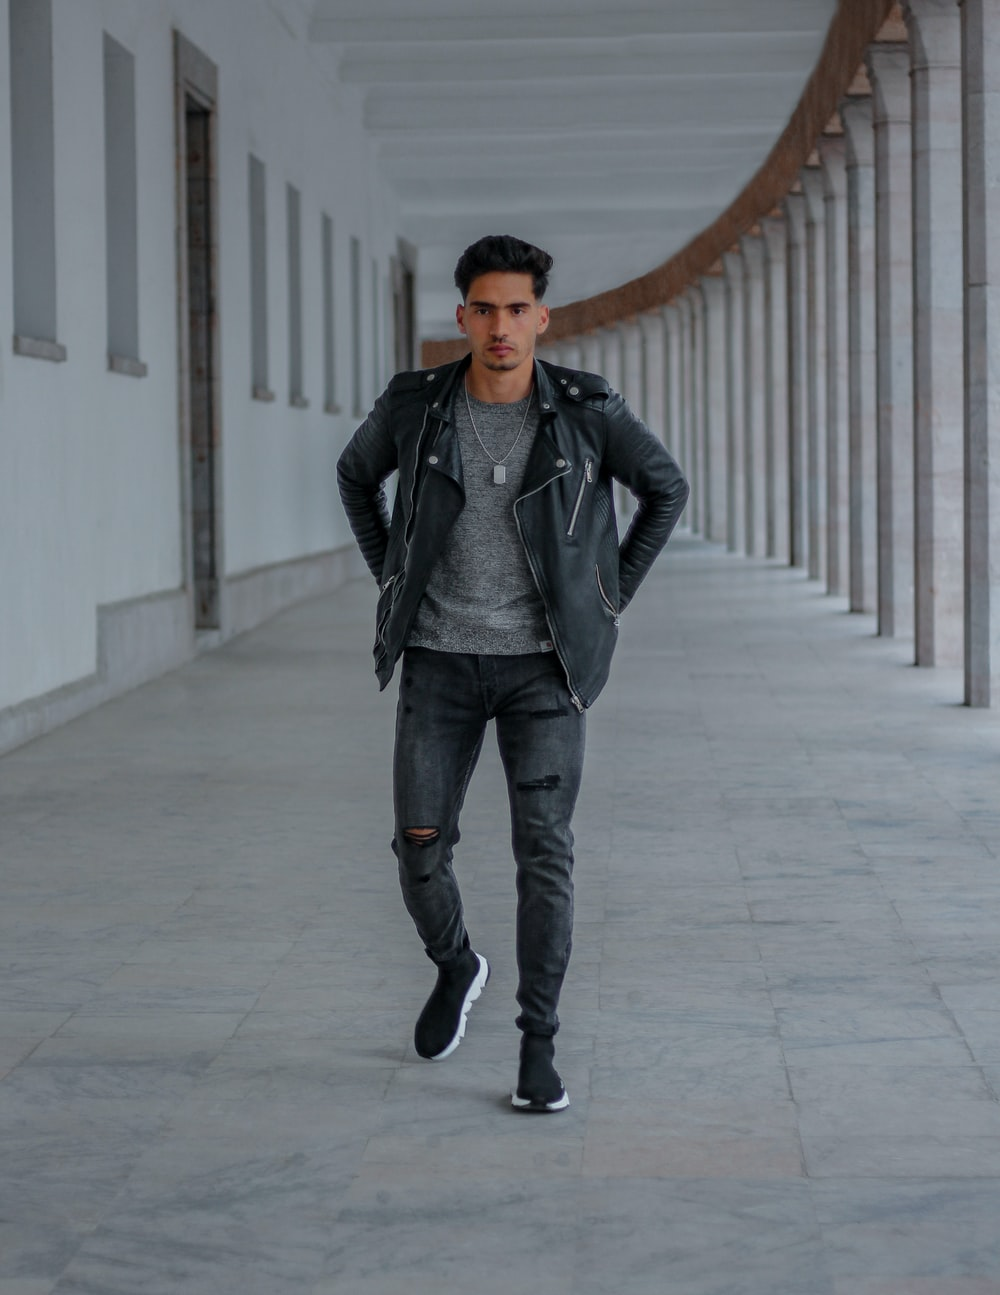 man in black leather jacket and blue denim jeans standing on white concrete floor